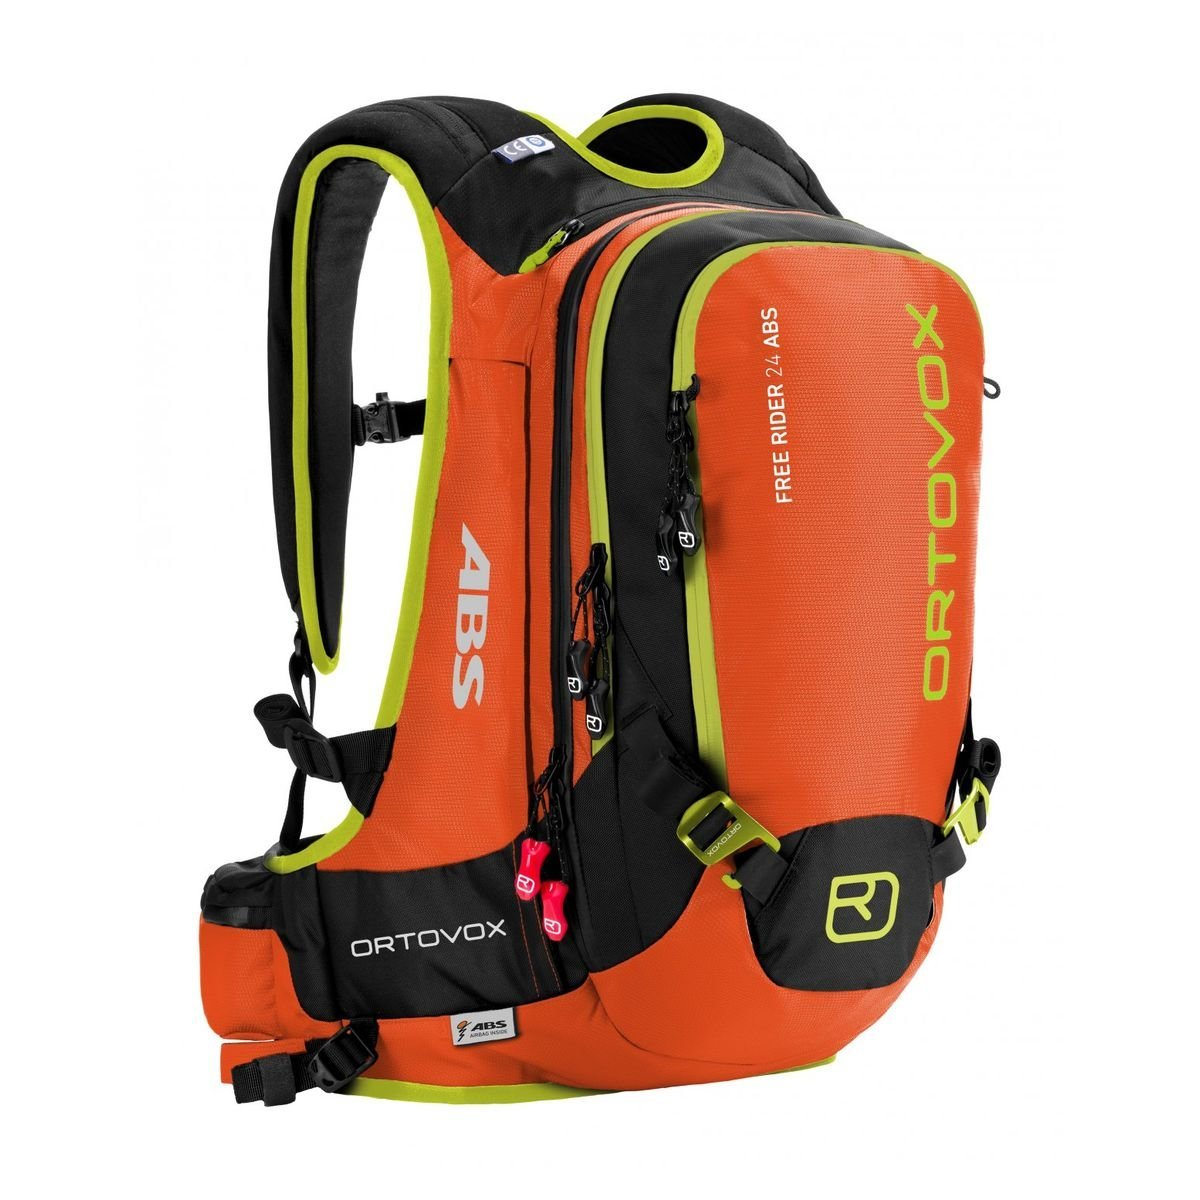 a9d840f502c Ortovox FreeRider 24 ABS Snow Avalanche Backpack Complete Set with M.A.S.S  Airbag S/M